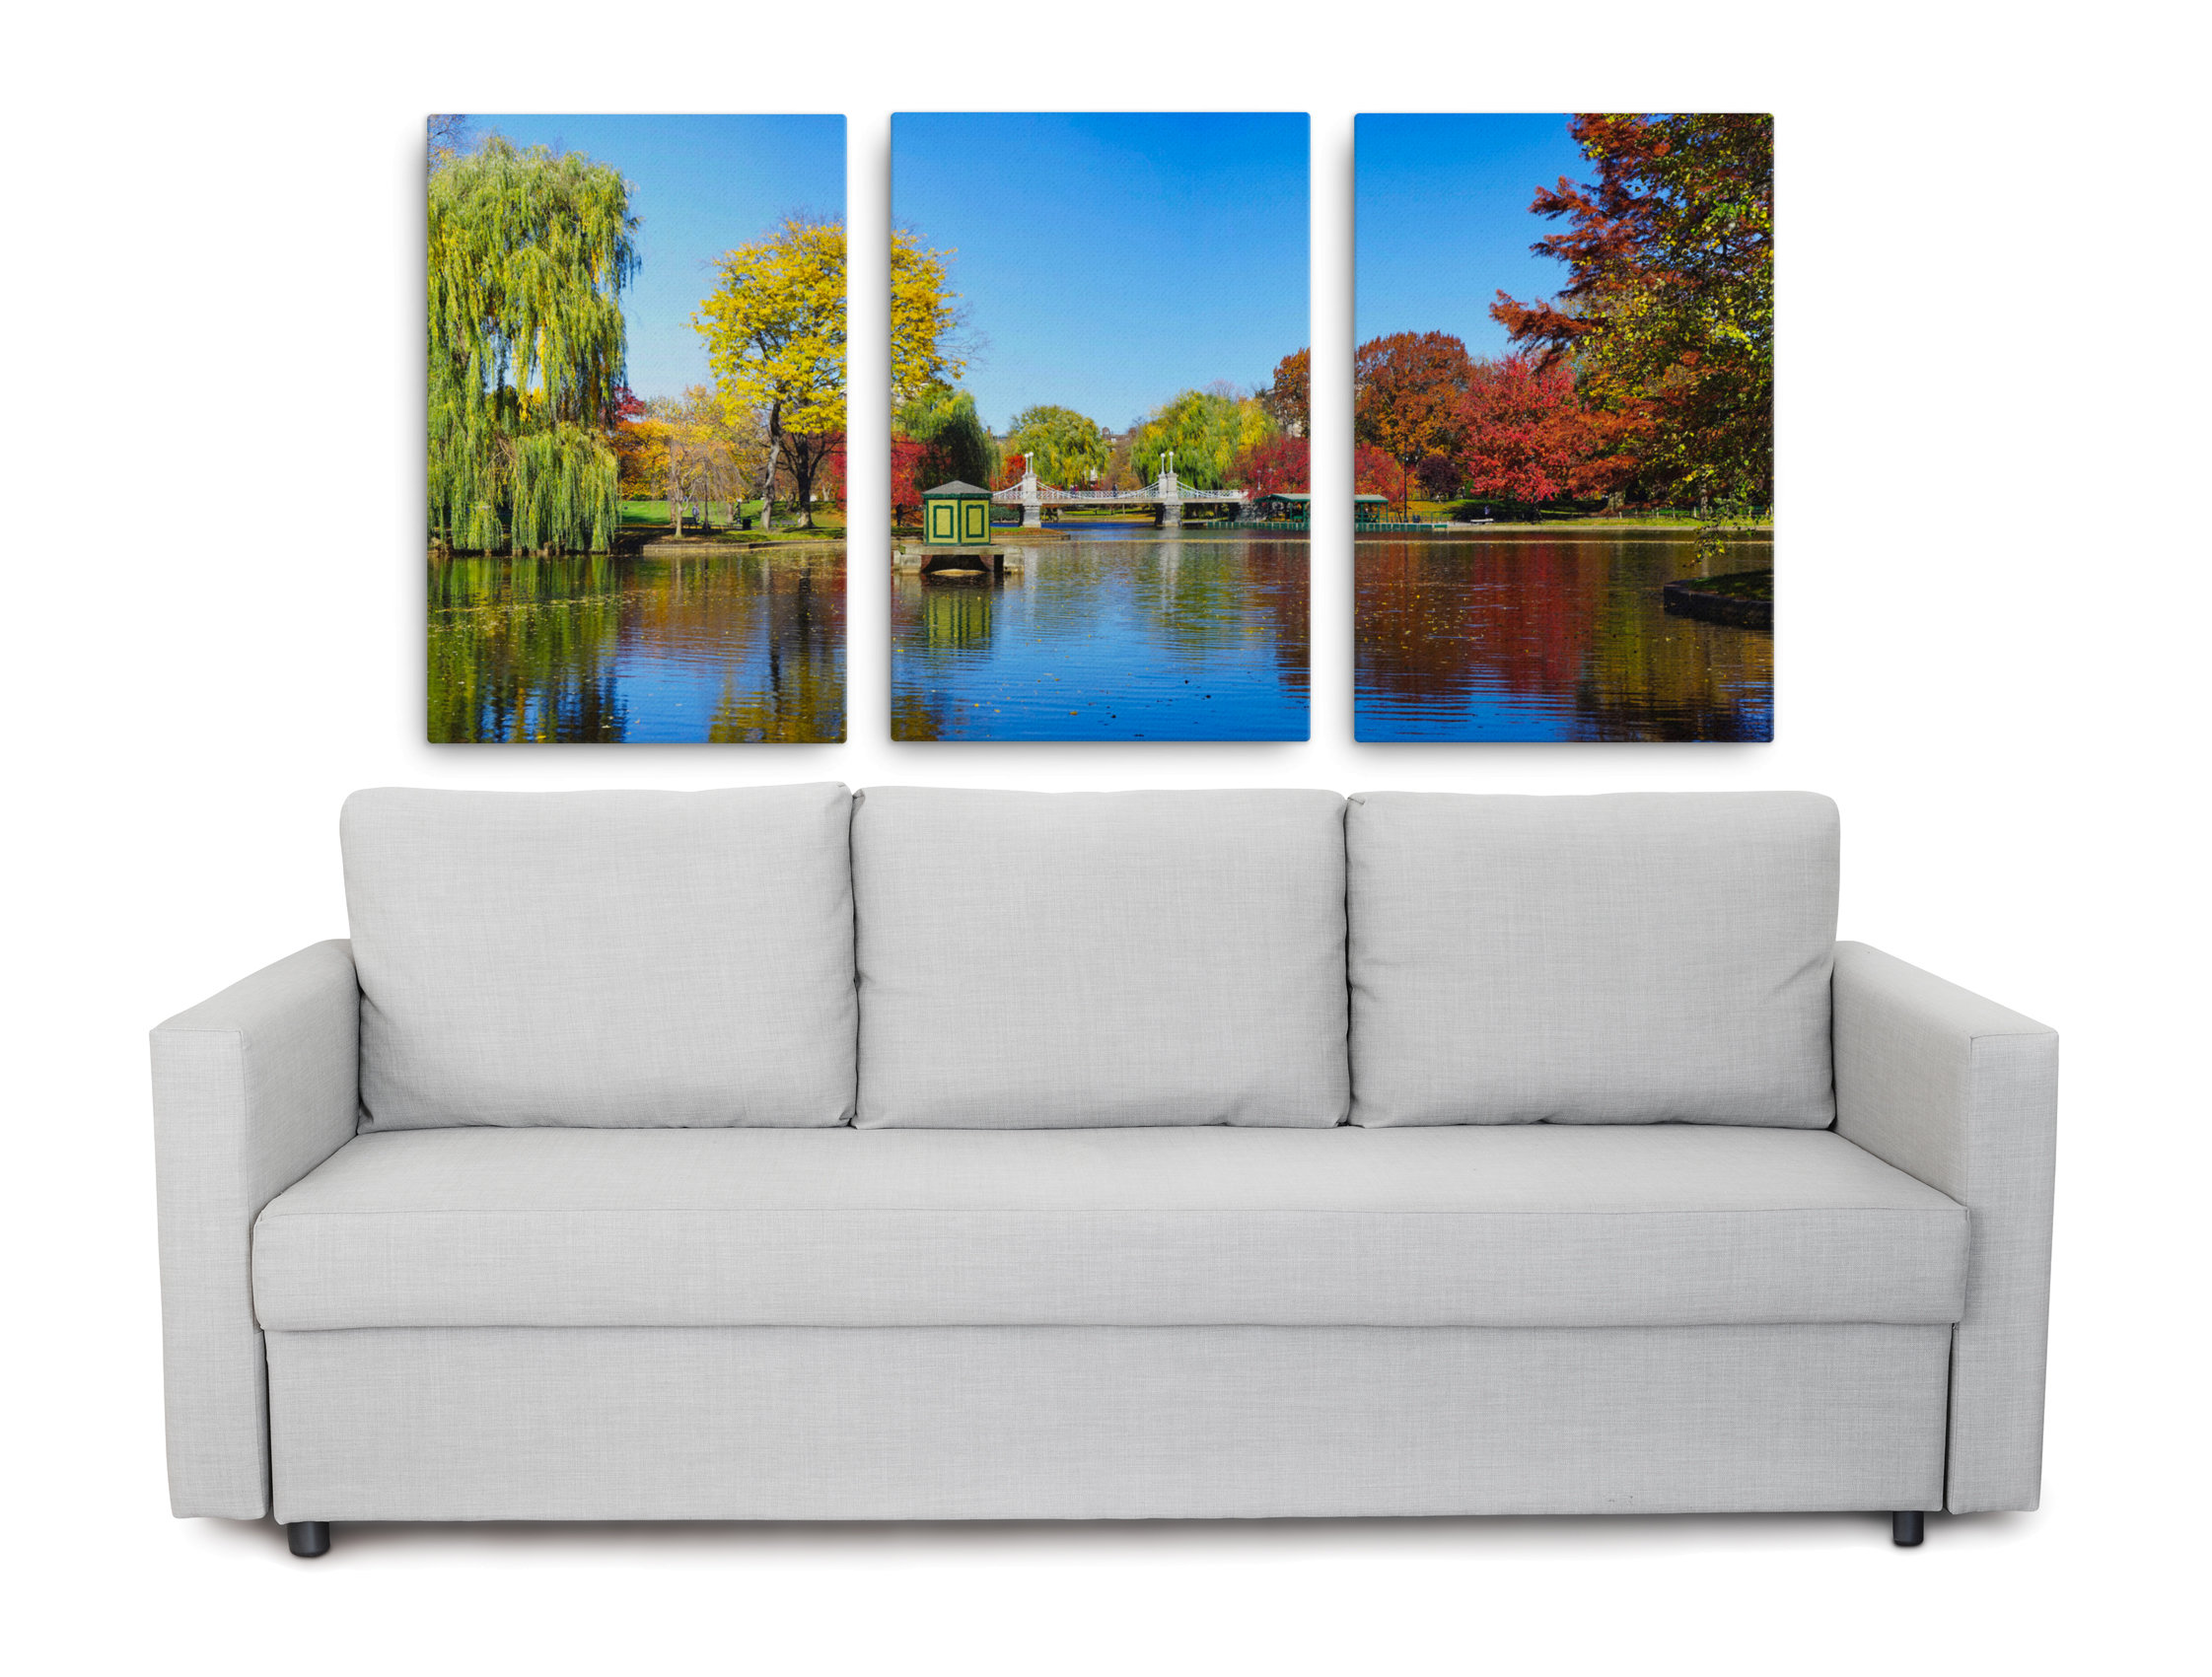 Product picture of our triptych of autumn in Boston Common park